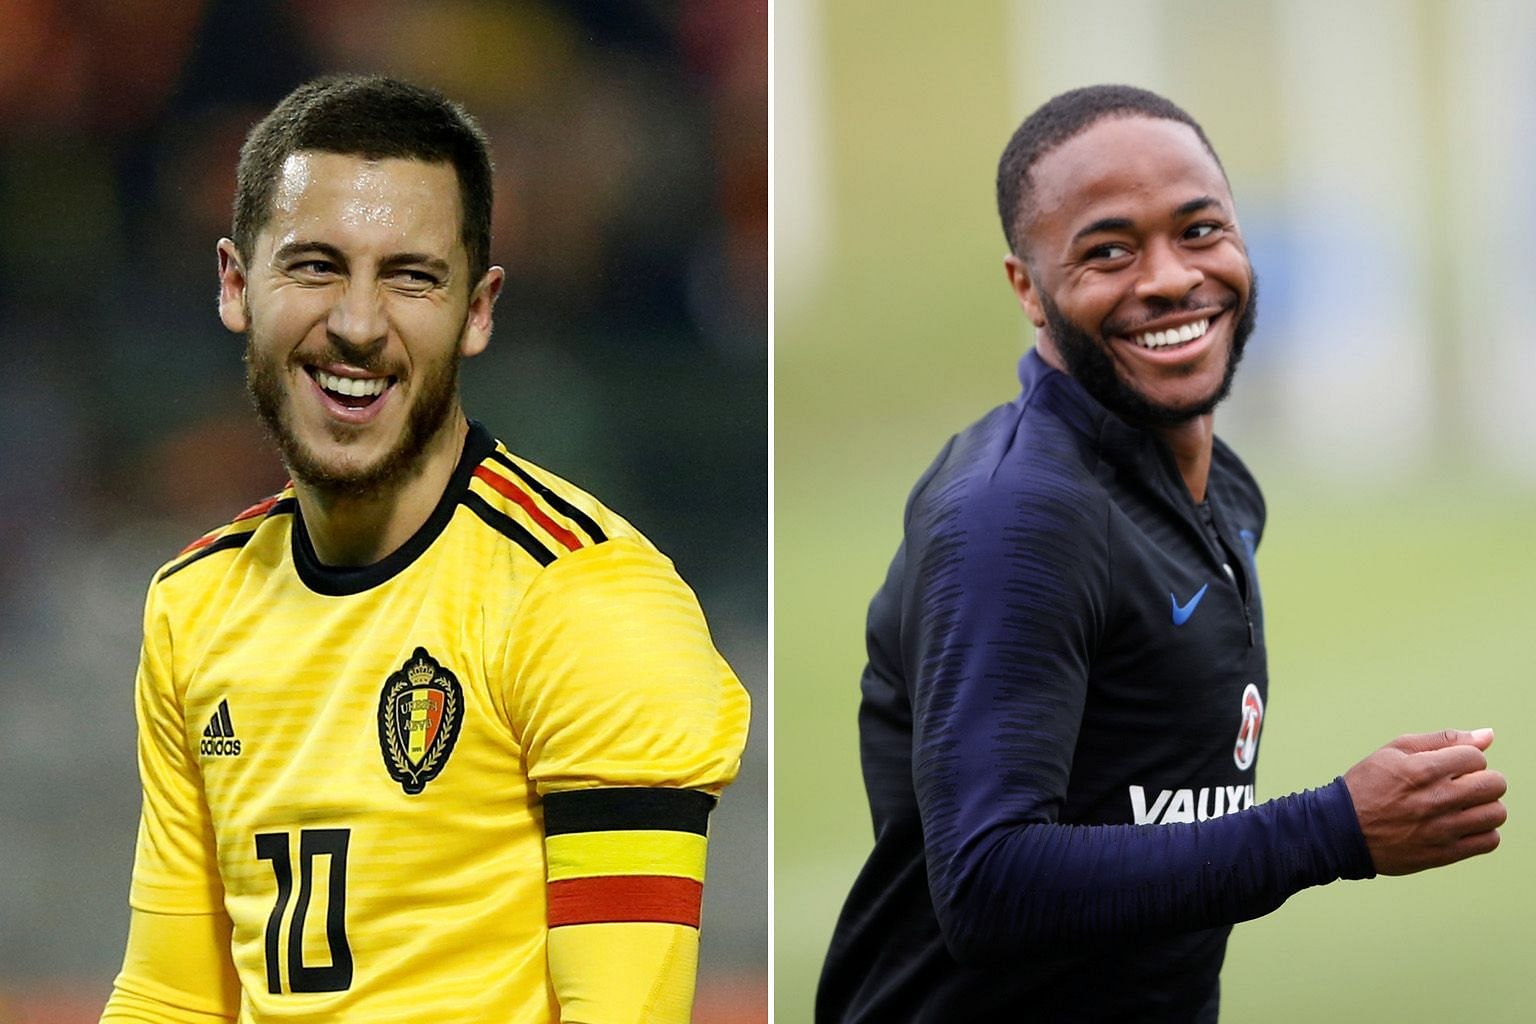 It will be a battle of the Premier League stars in Belgium versus England. Eden Hazard (far left) had 12 league goals in a relatively subdued season with deposed champions Chelsea, while Raheem Sterling hit the net 18 times in Manchester City's runaw